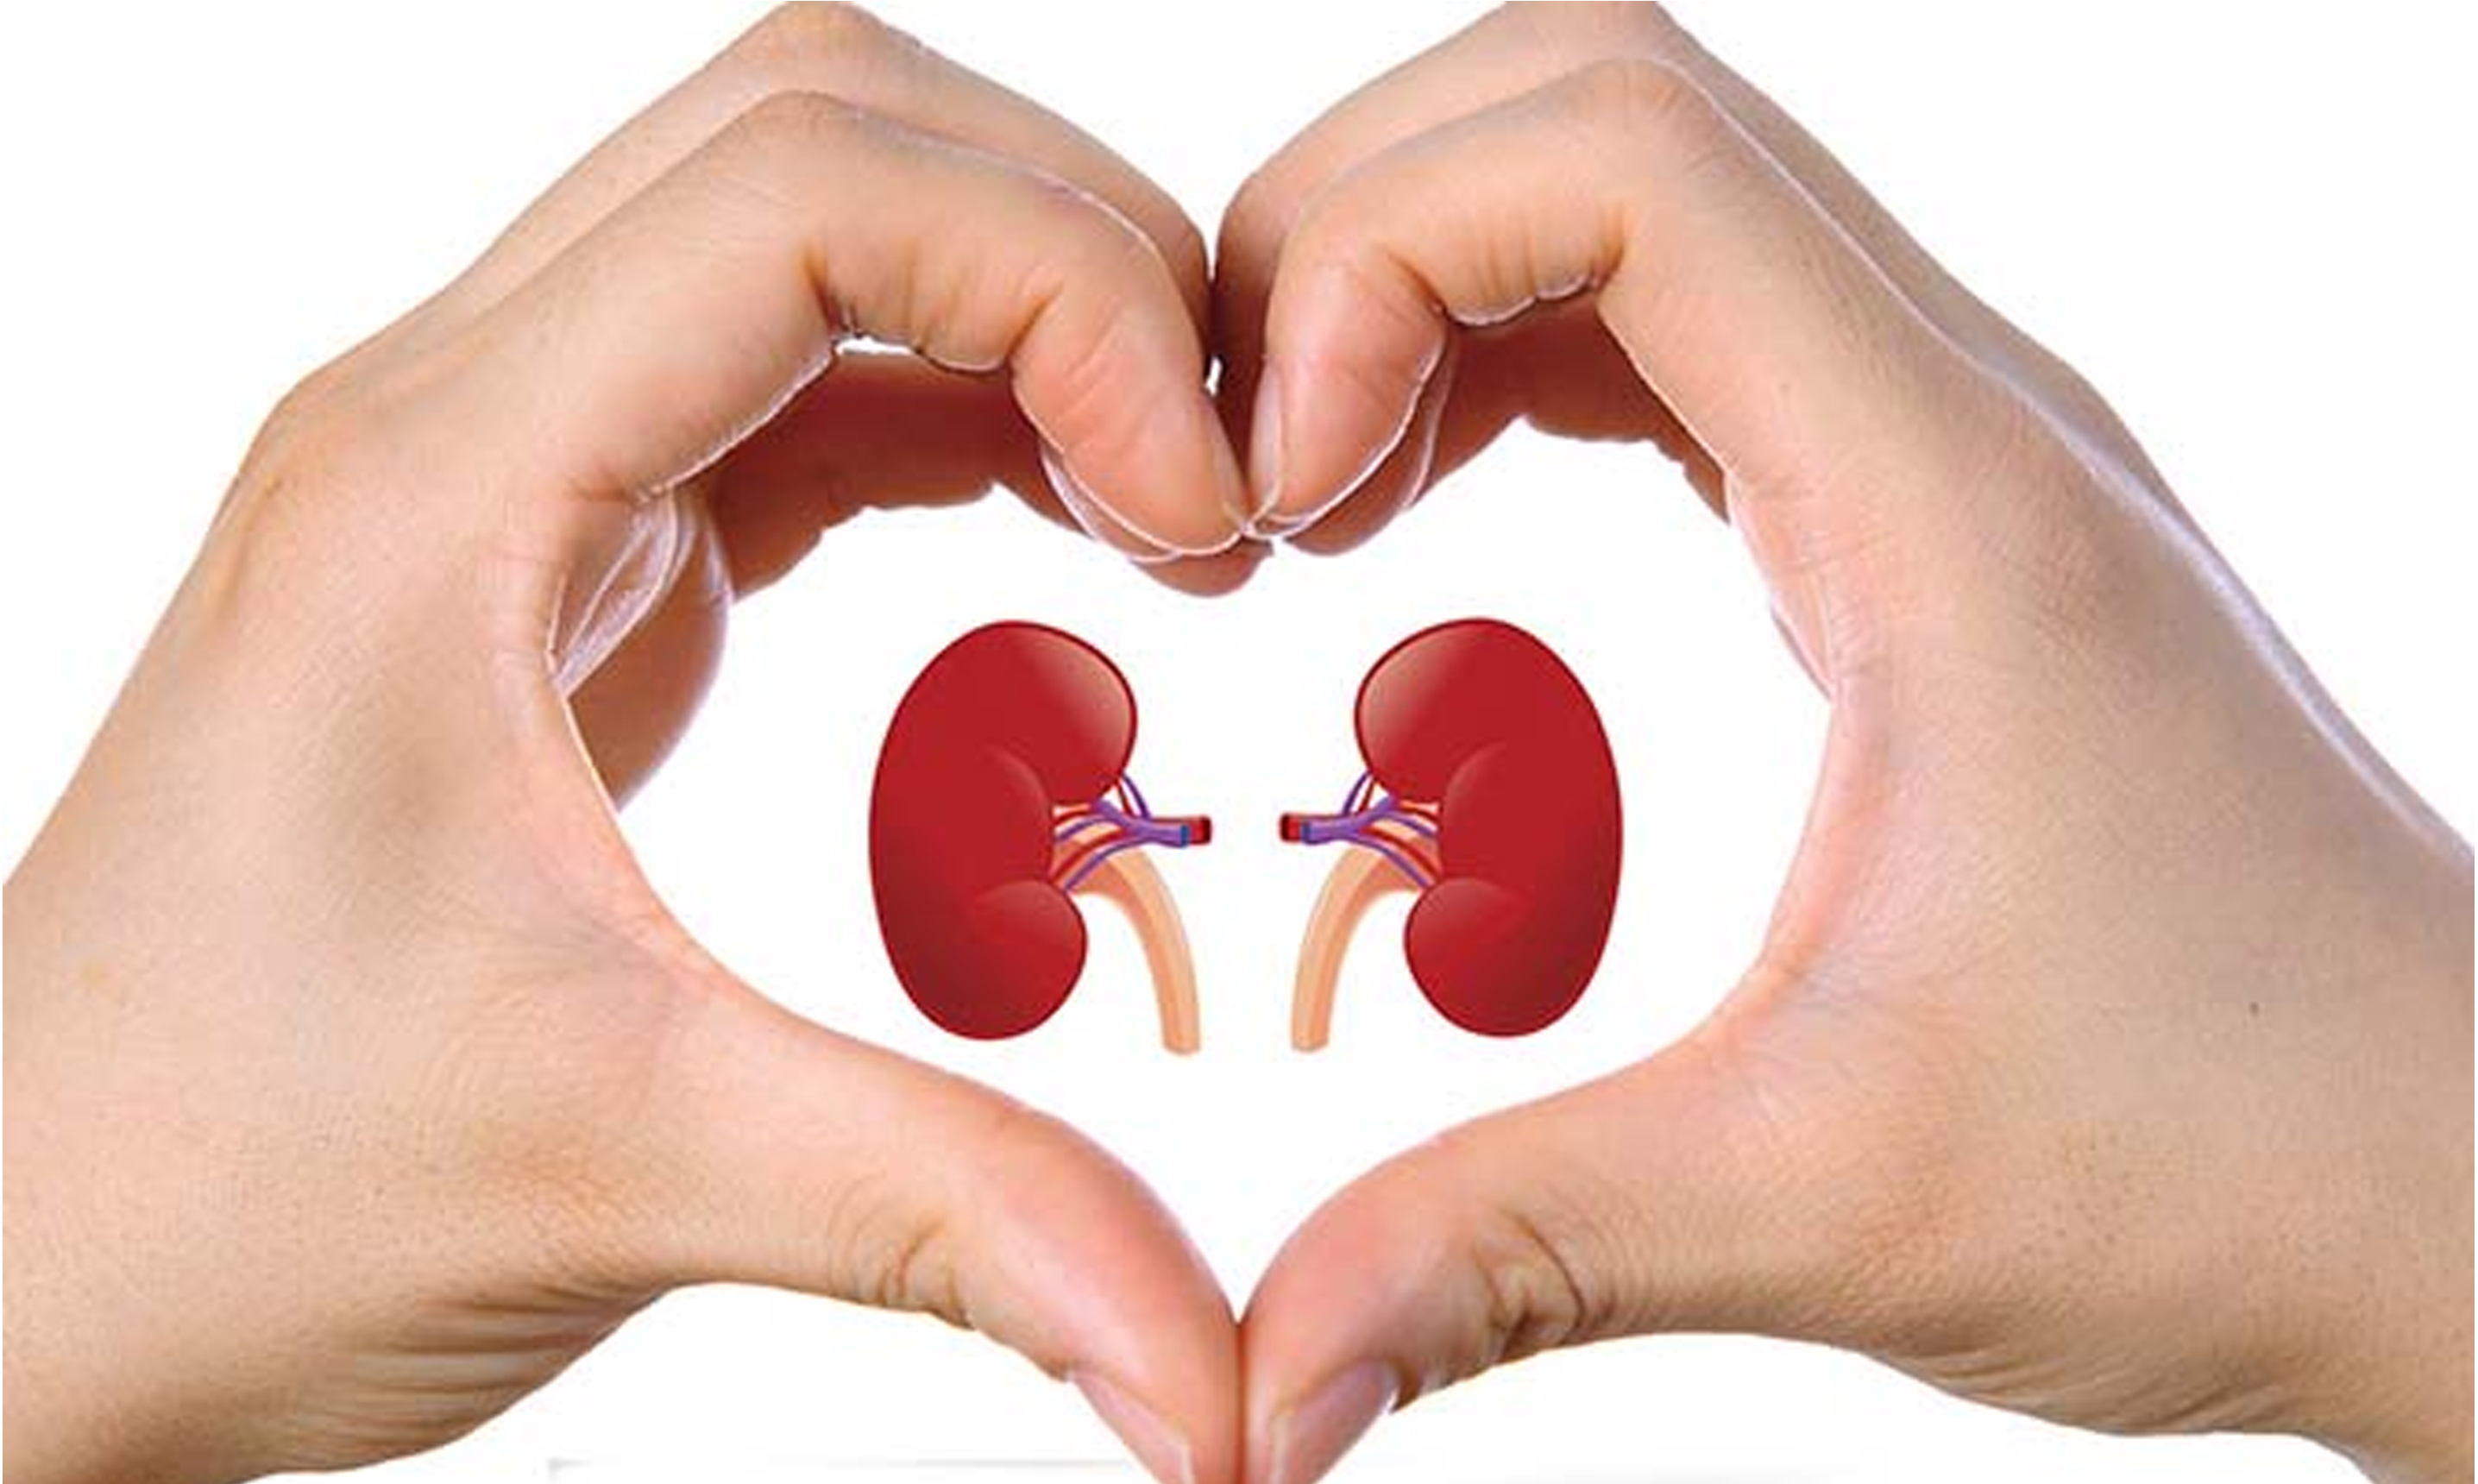 7 Tips for Maintaining Healthy Kidneys